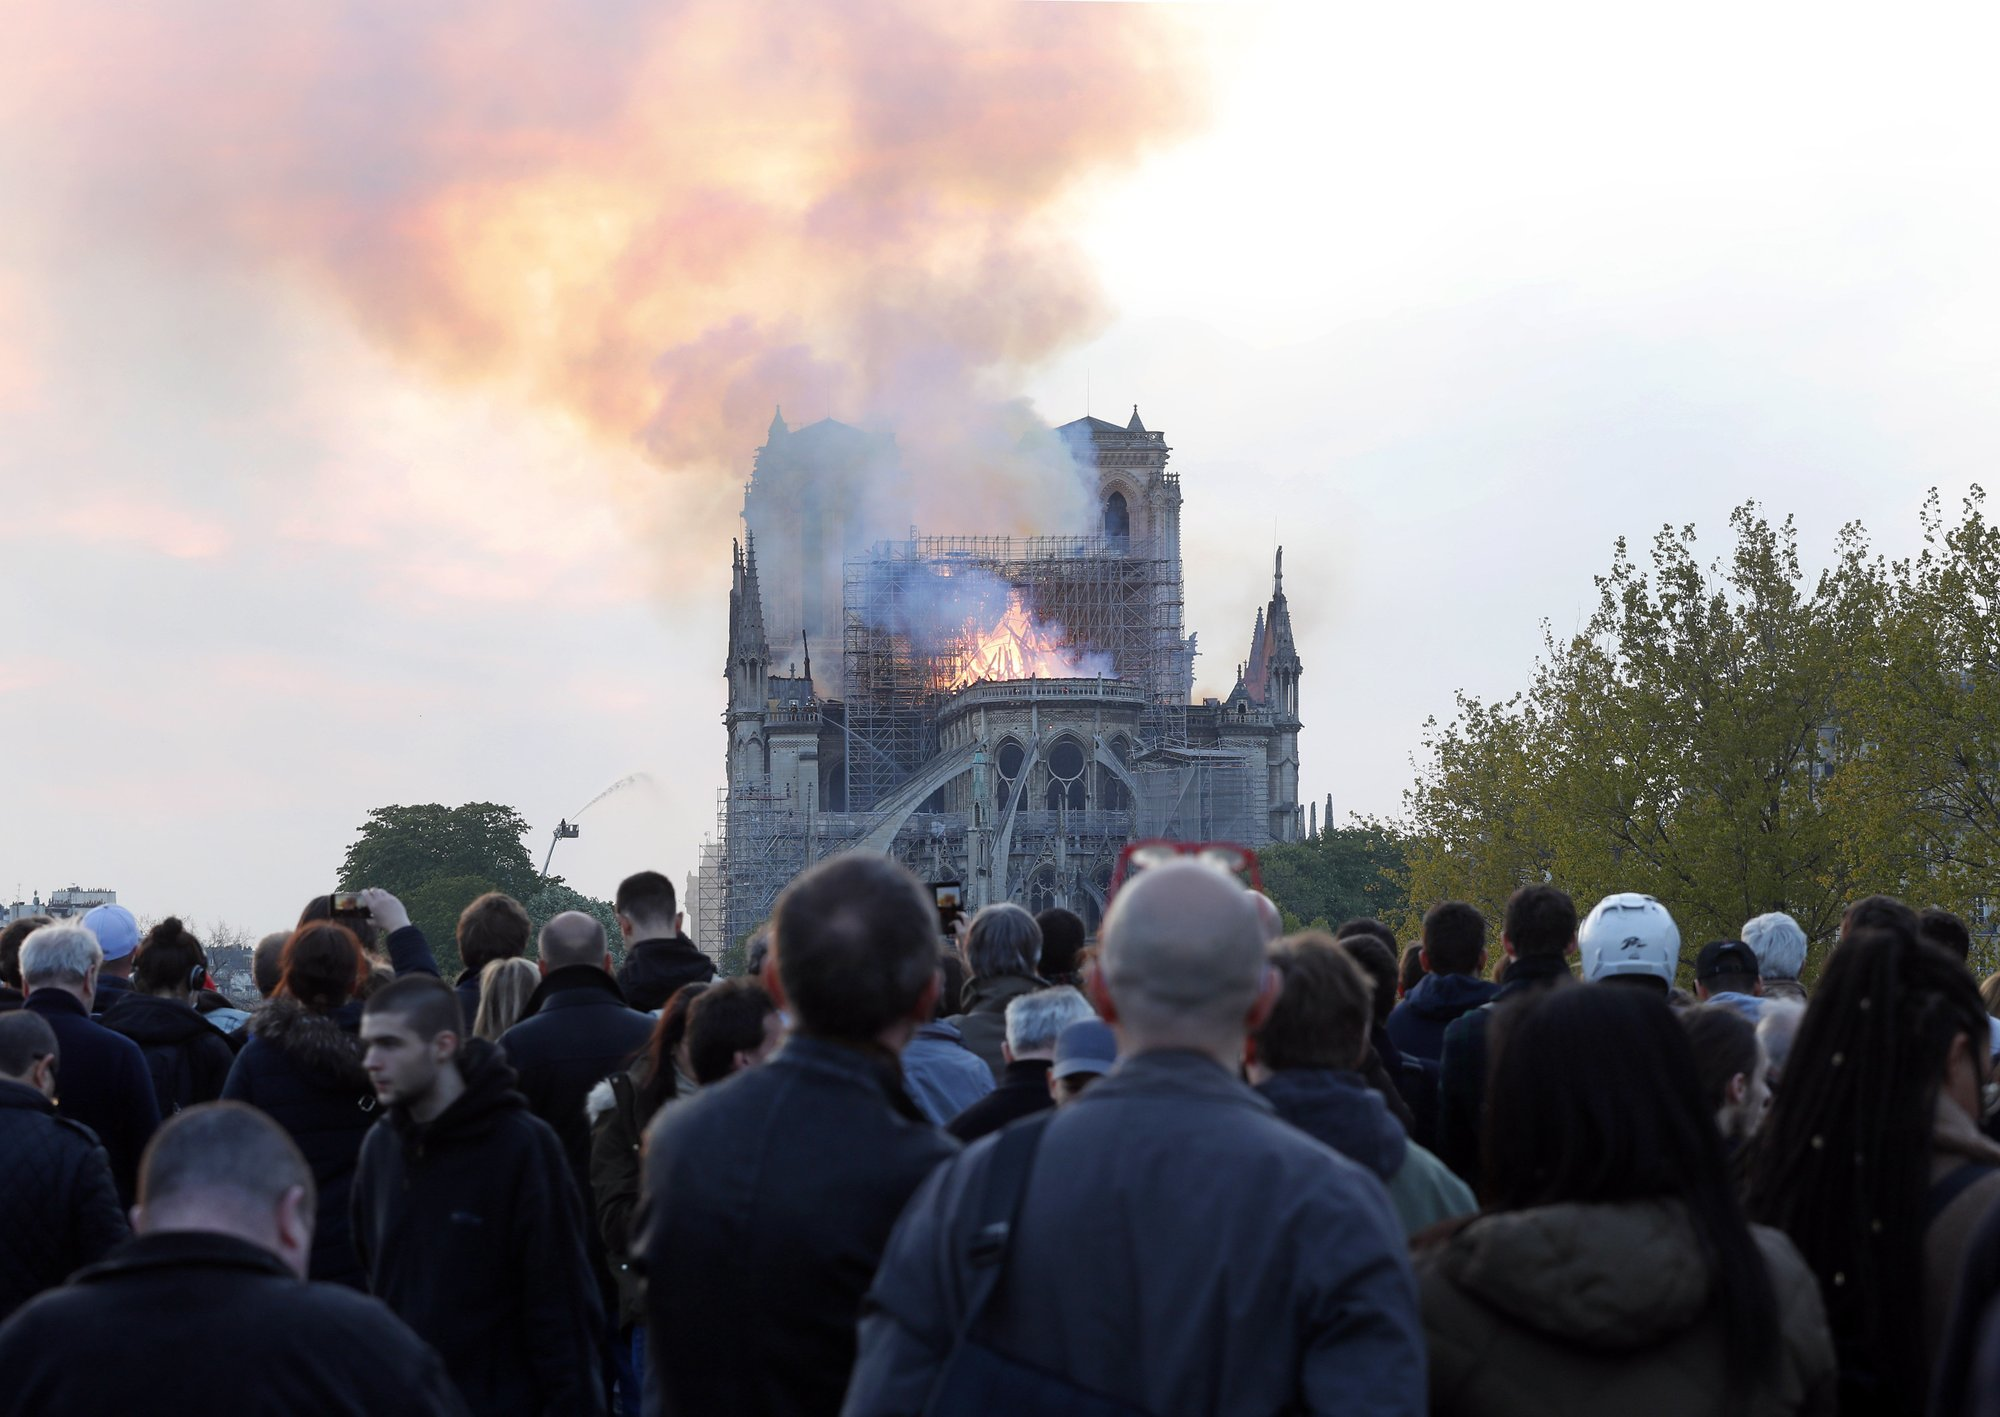 People watch as flames and smoke rise from Notre-Dame cathedral as it burns in Paris. — AP